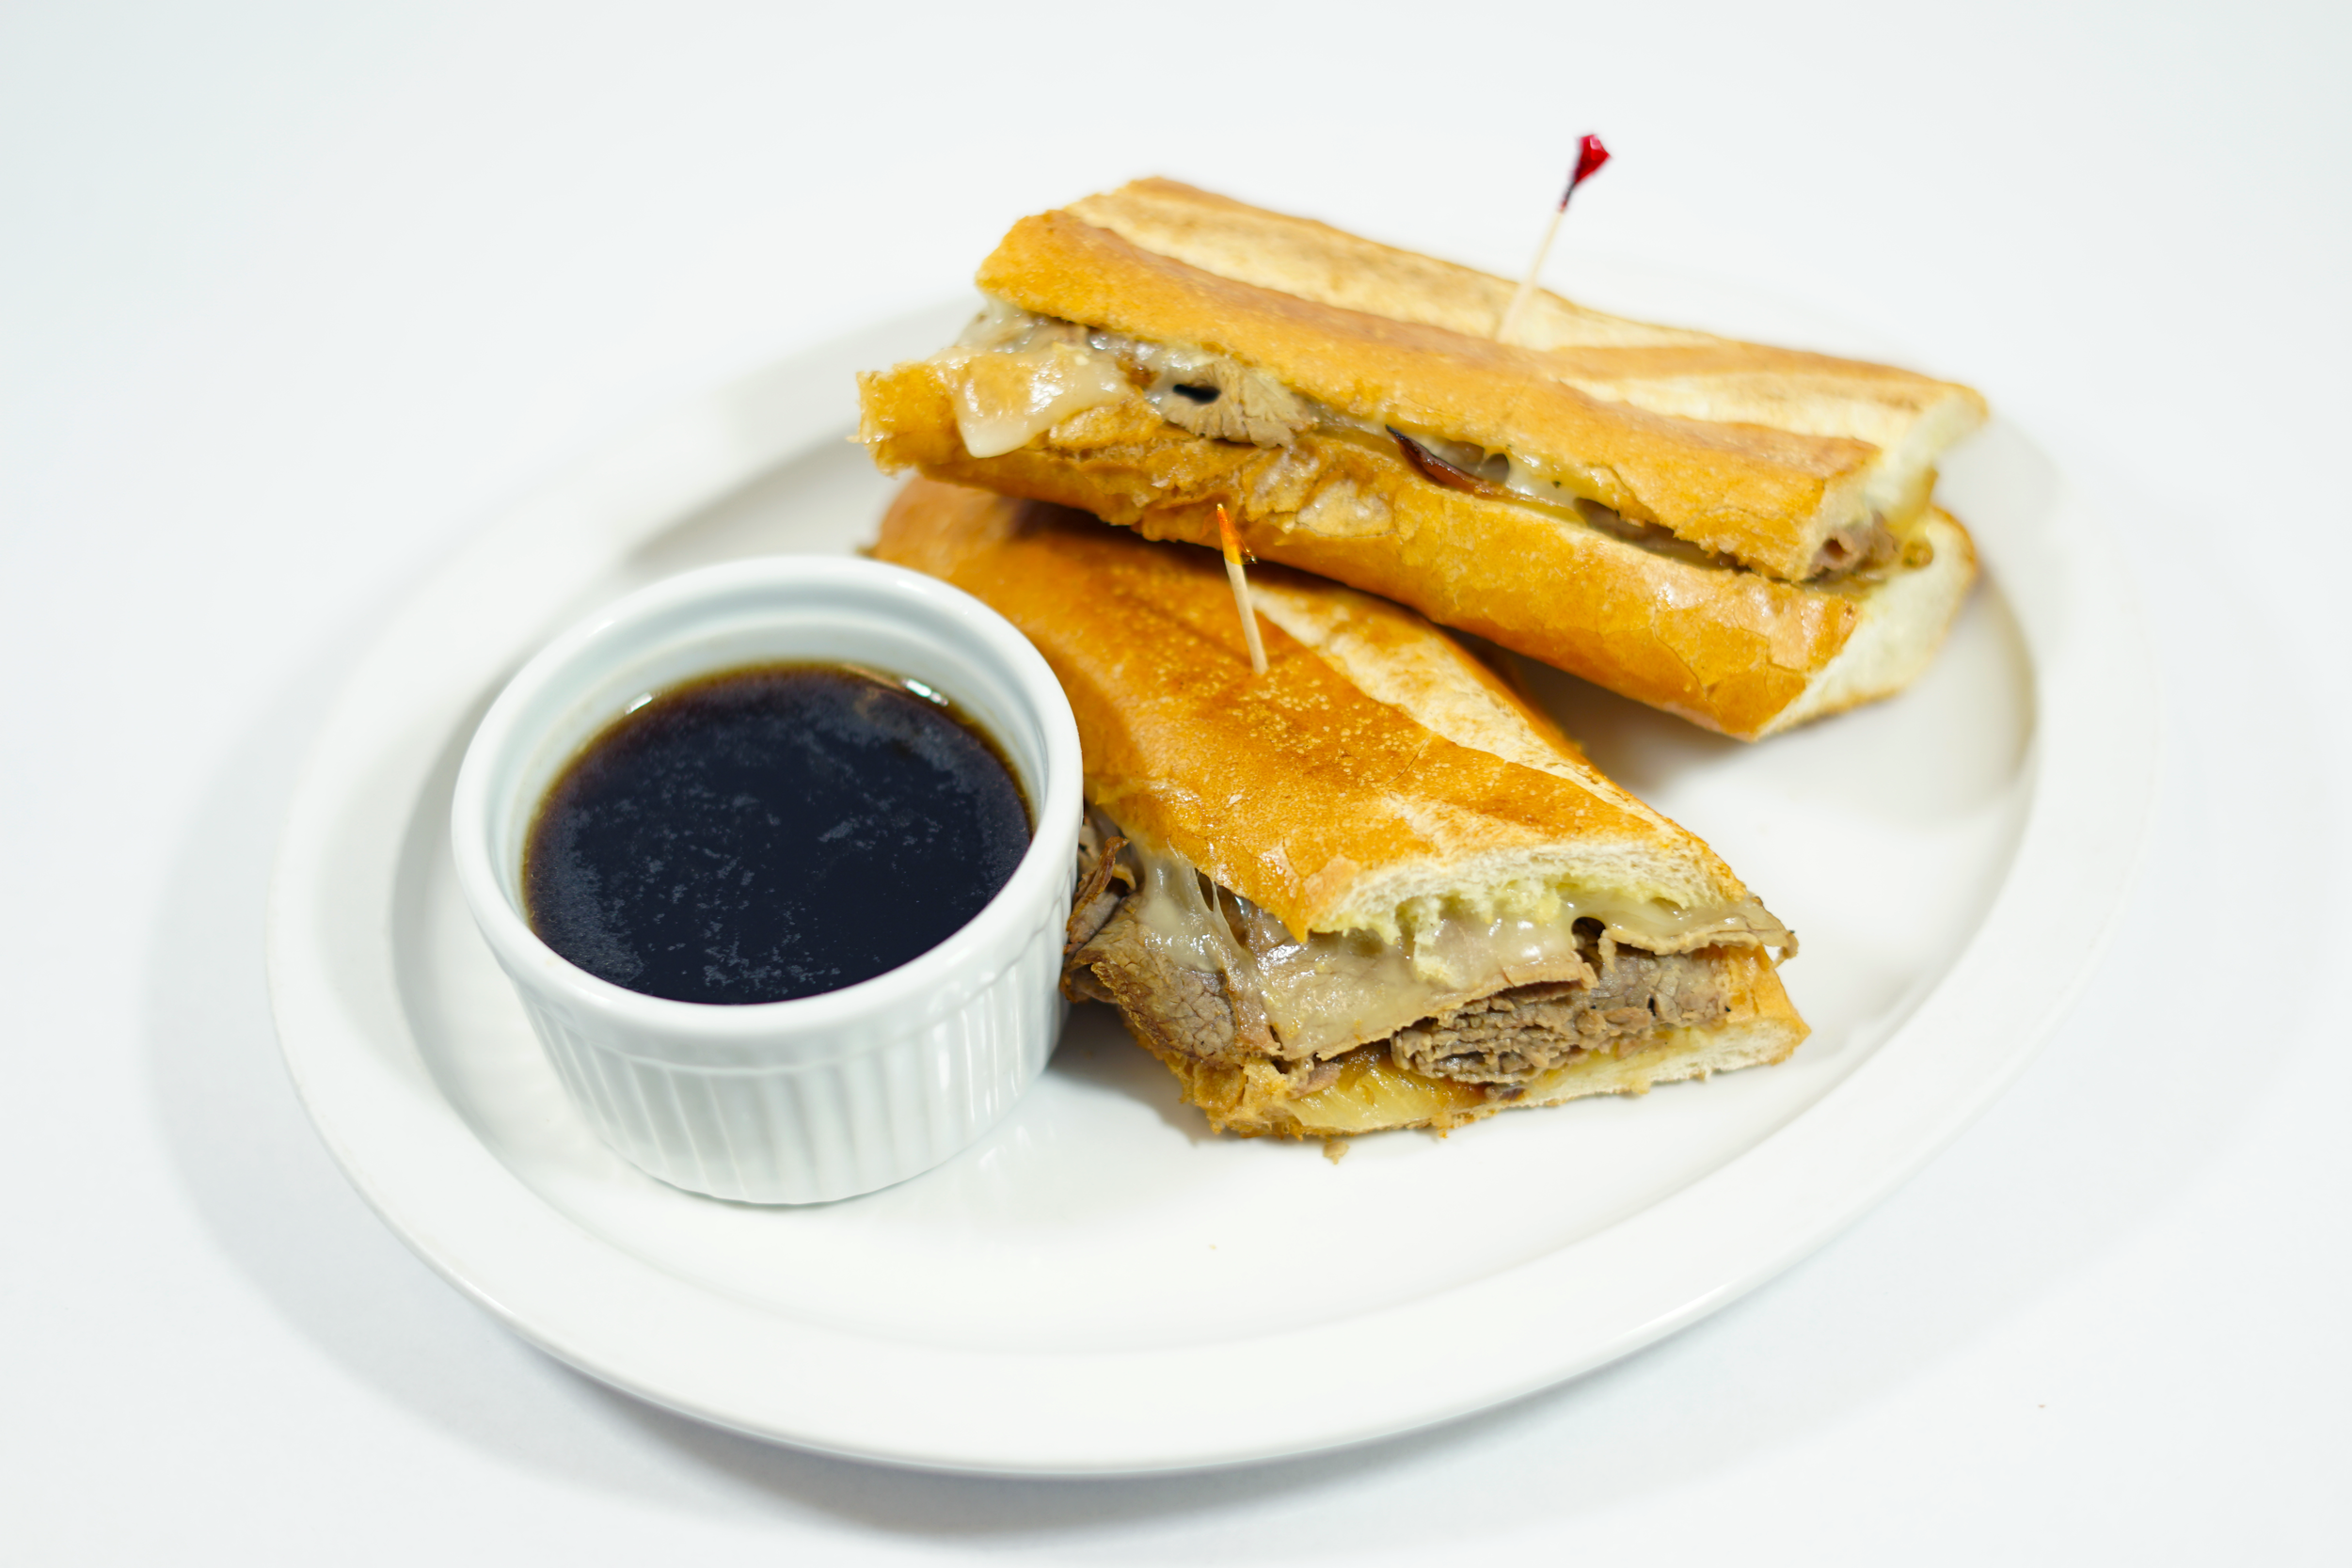 French Dip - Freshly prepared eye of round beef on a Baguette with caramelized onions, dijon mayo spread and provolone cheese. A side of au jus to dip.